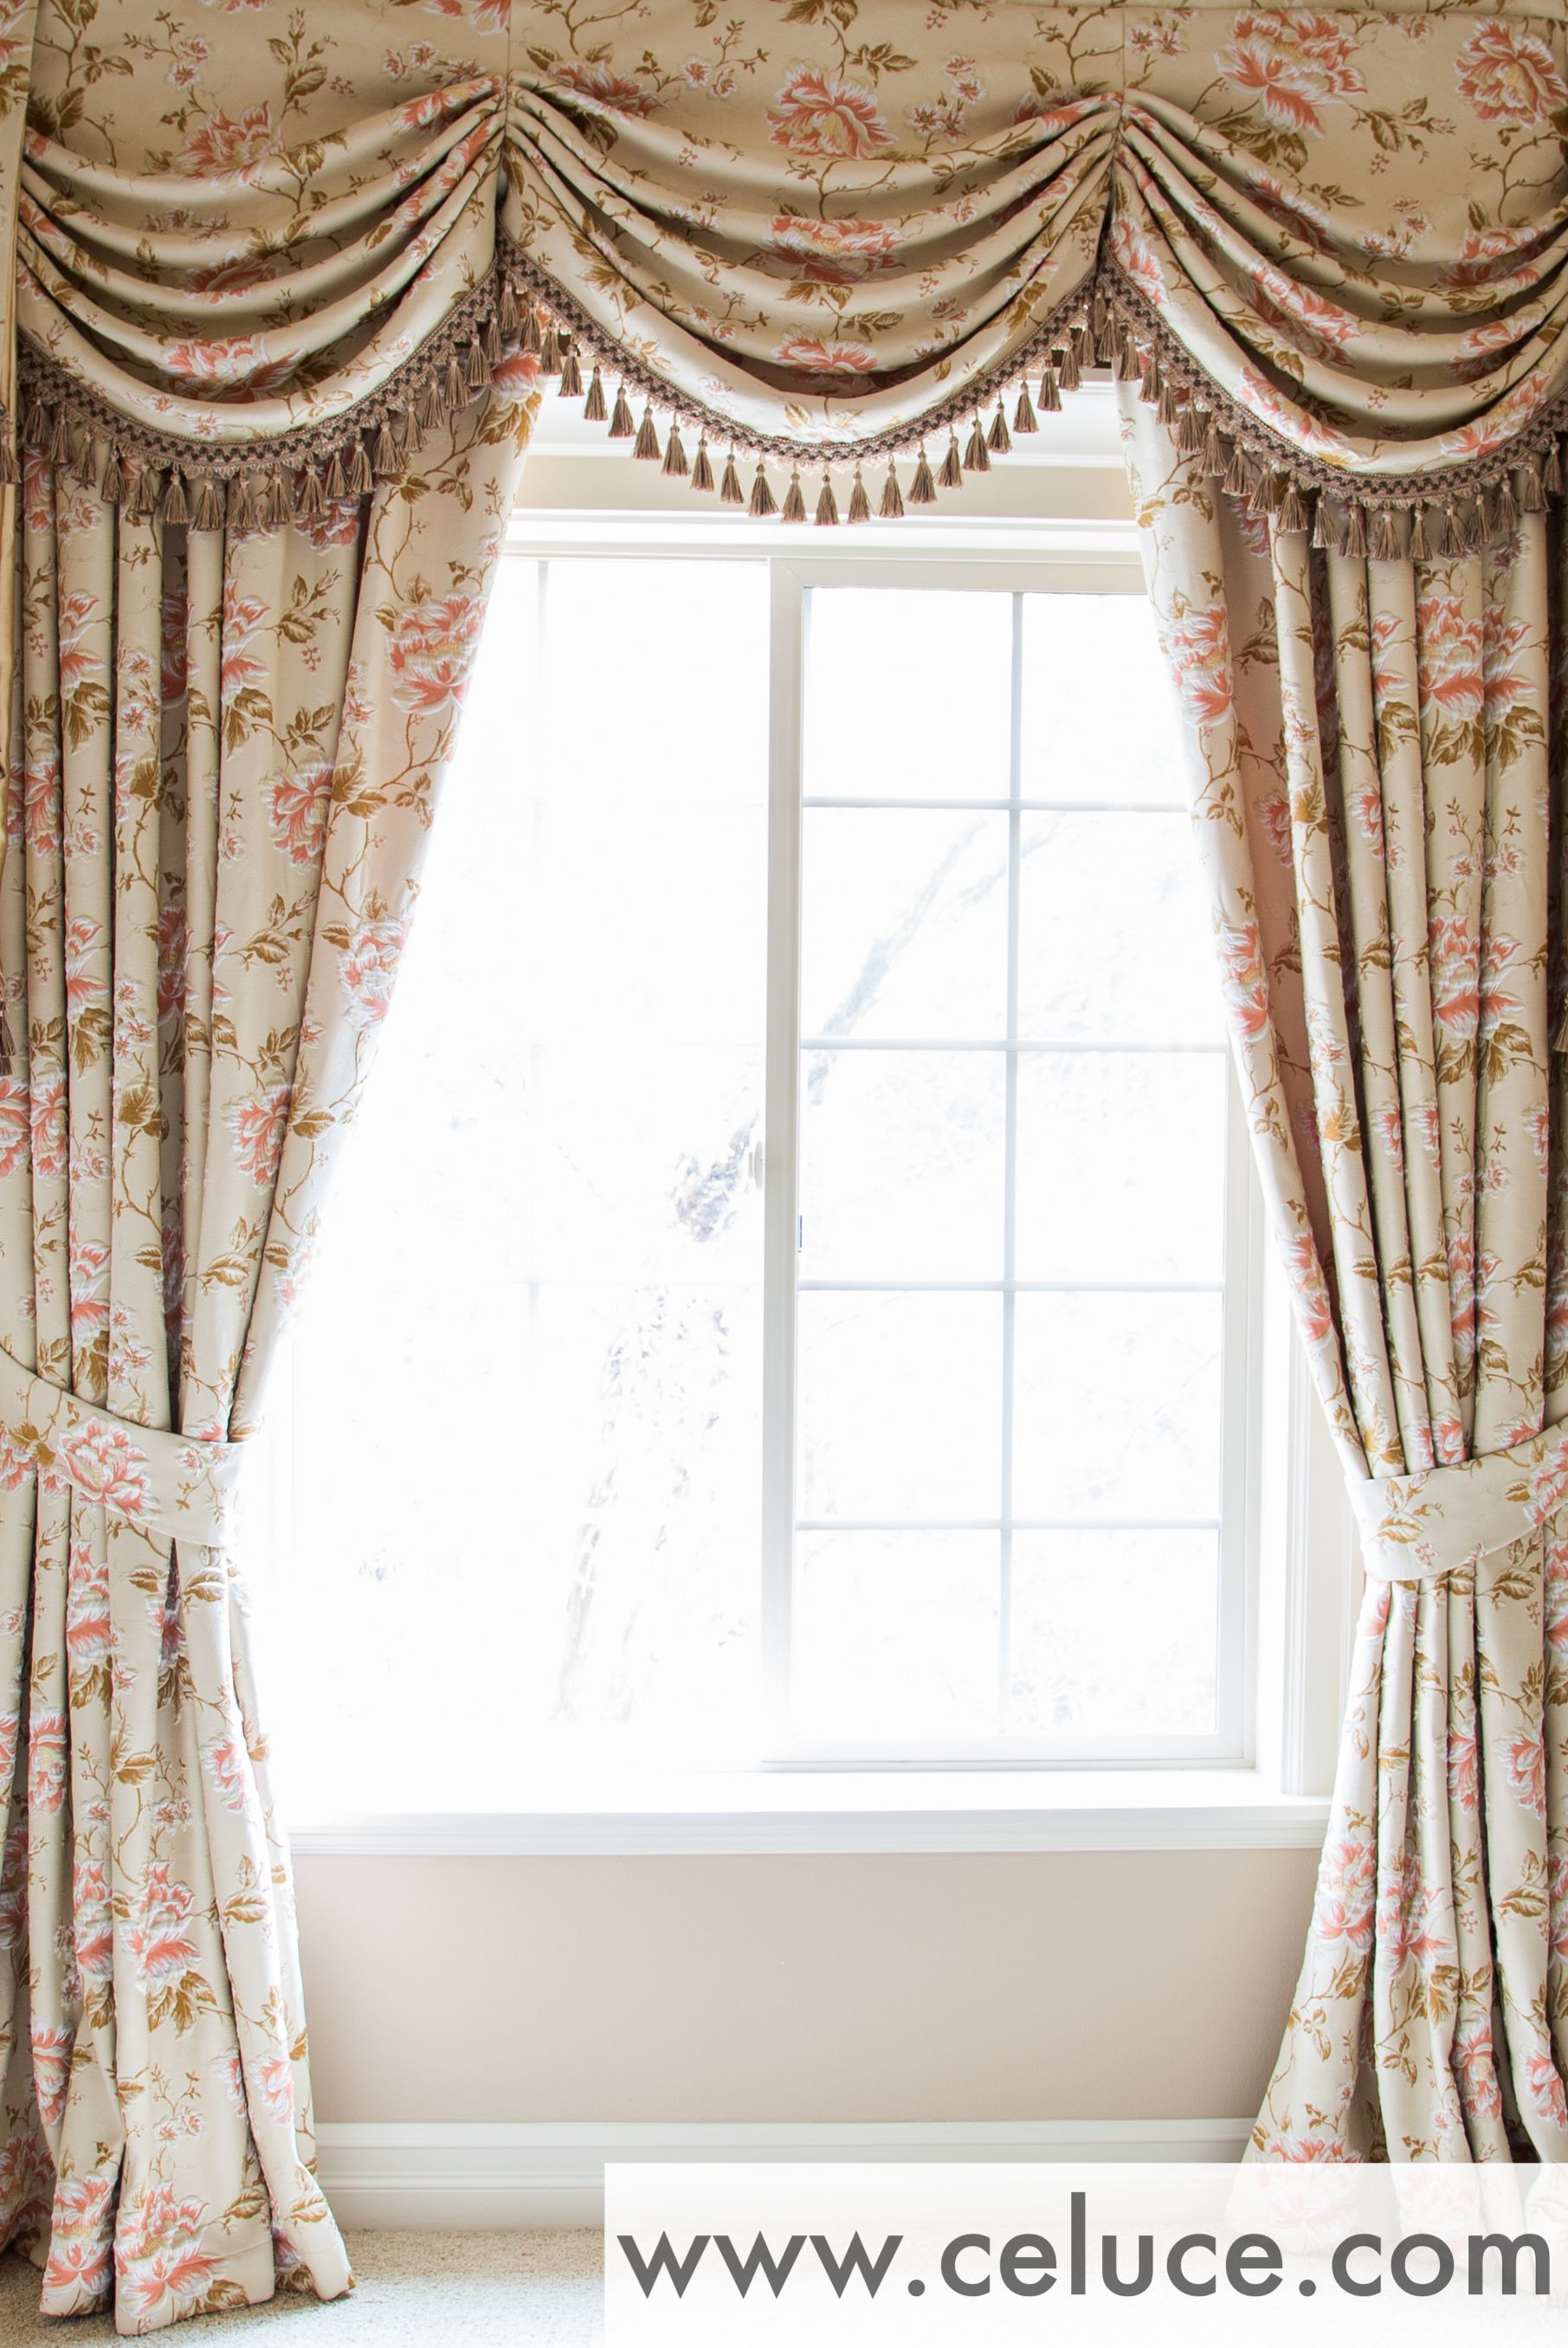 Www Celuce Com Customize Curtains Online Swag Valance Victorian Style Stylish Curtains Curtains Drapes Curtains #swag #valance #for #living #room